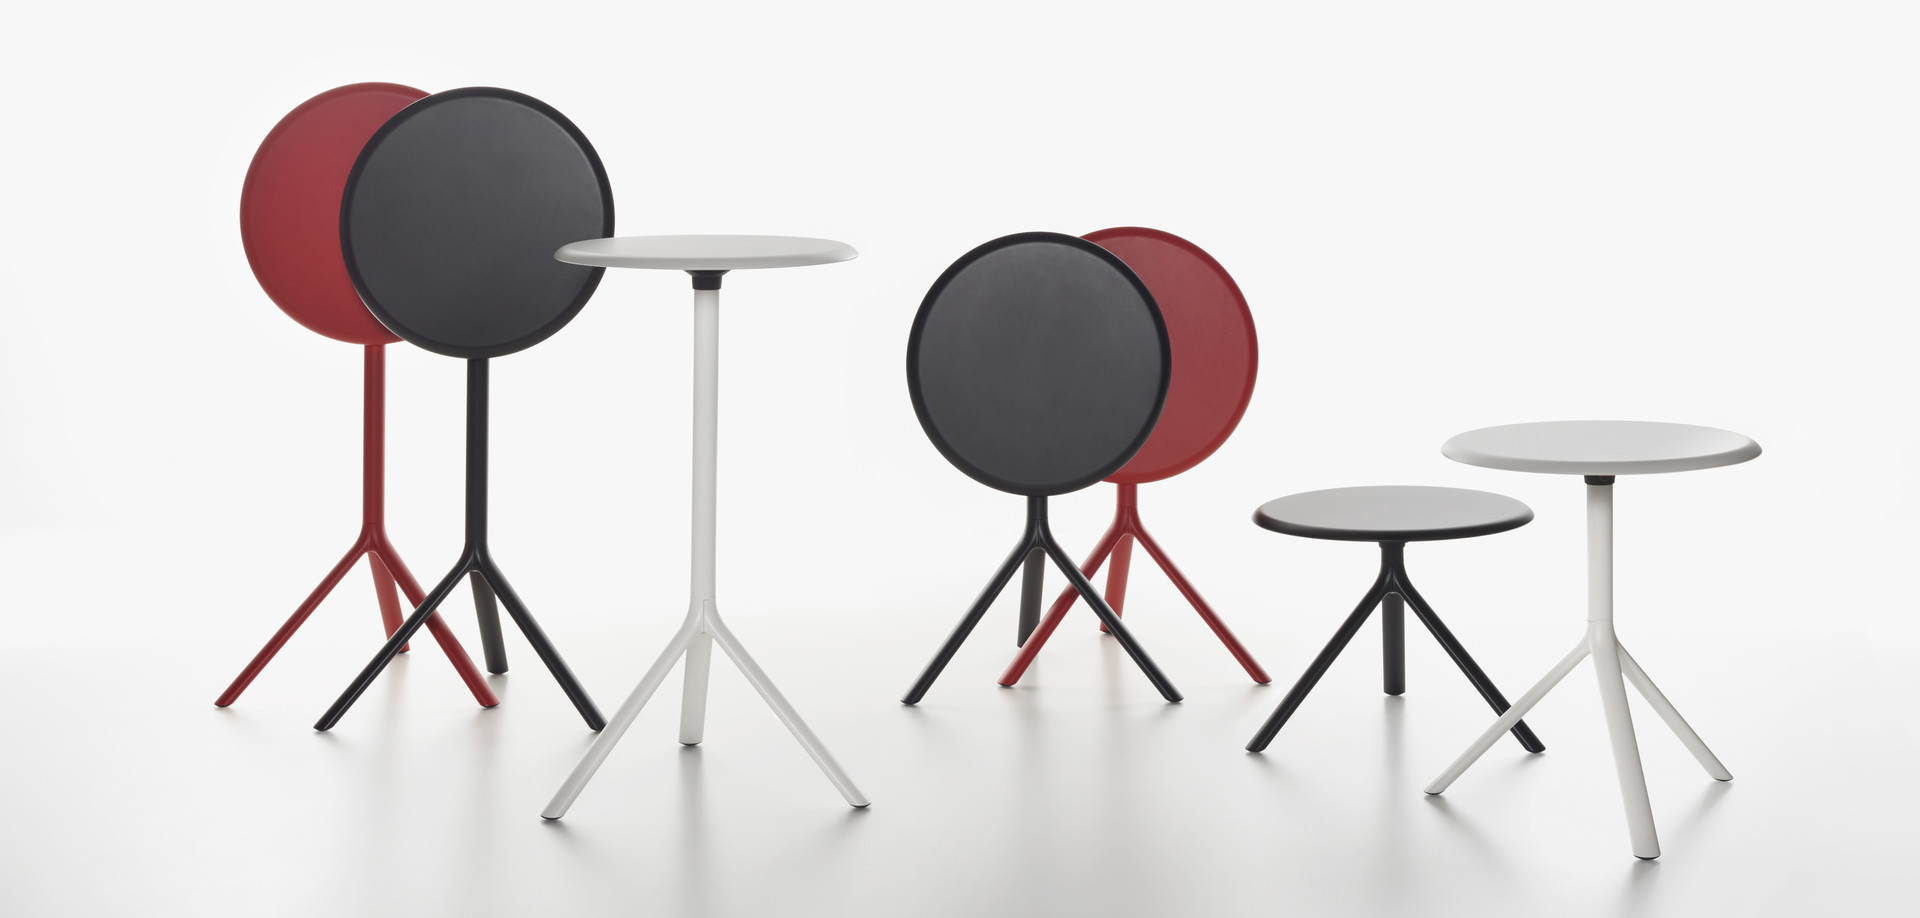 Plank - MIURA table, round table top, 50 cm high - group with others